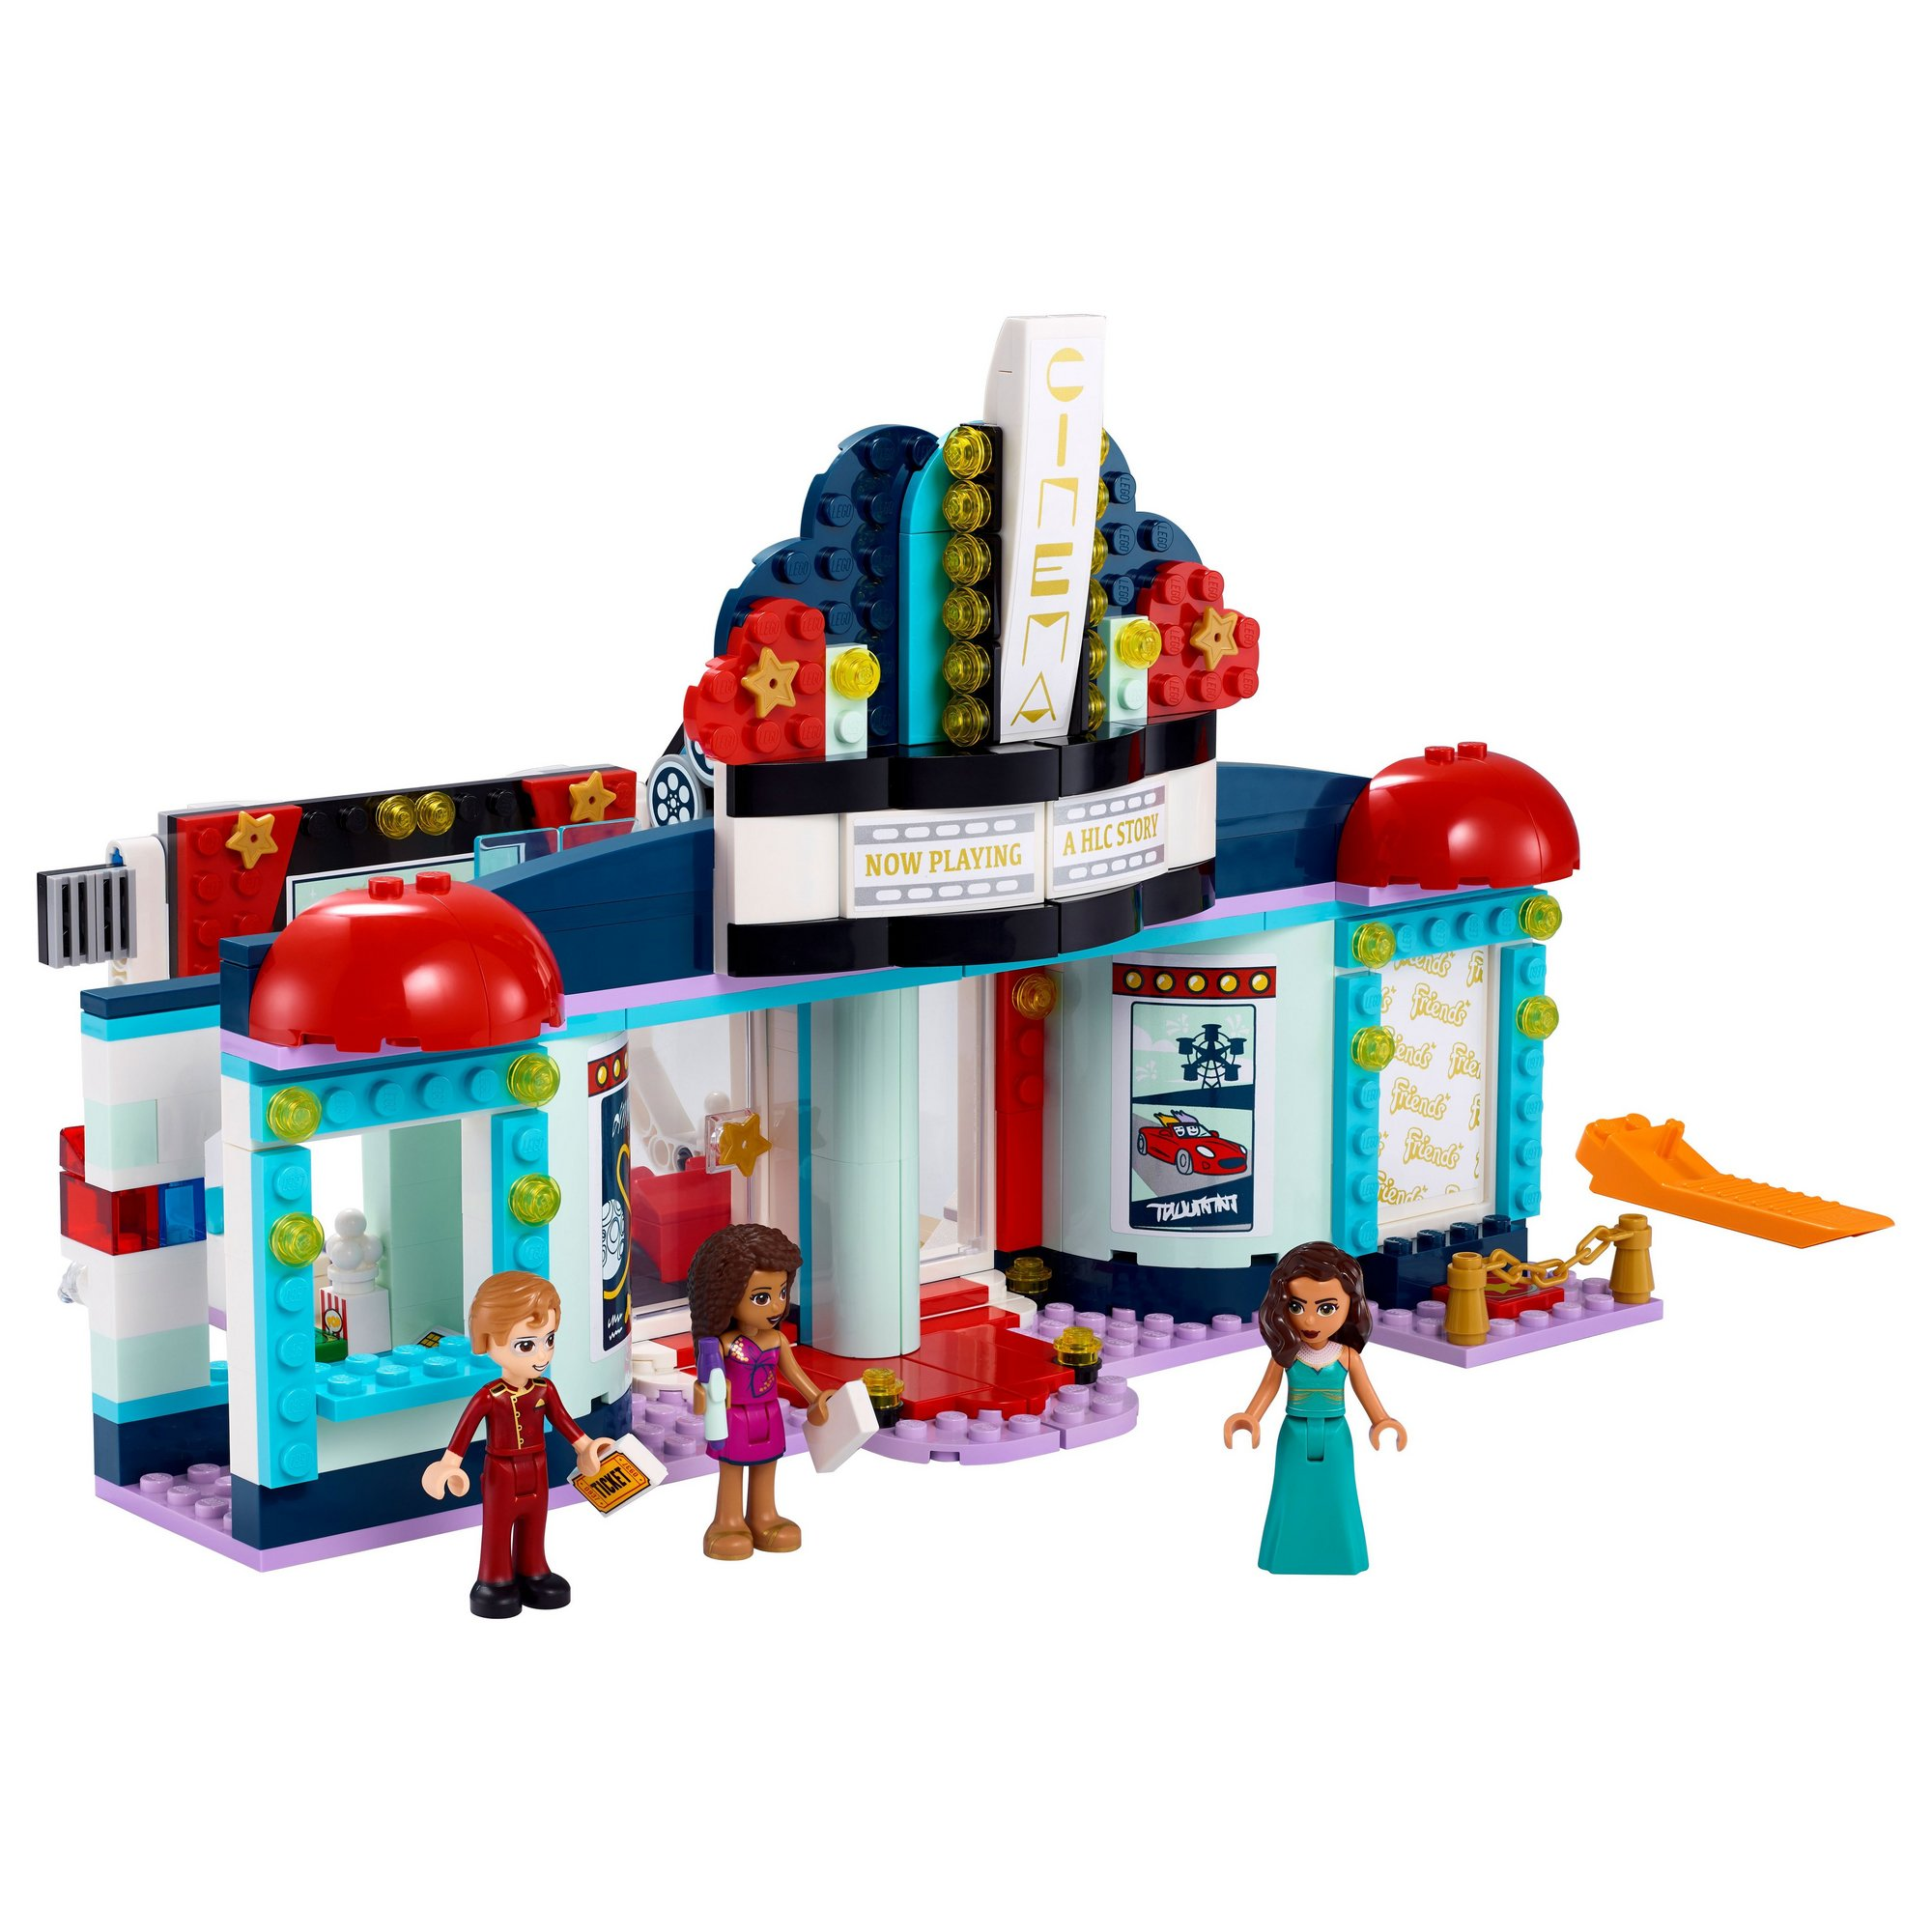 Image of LEGO Friends Heartlake City Movie Theater